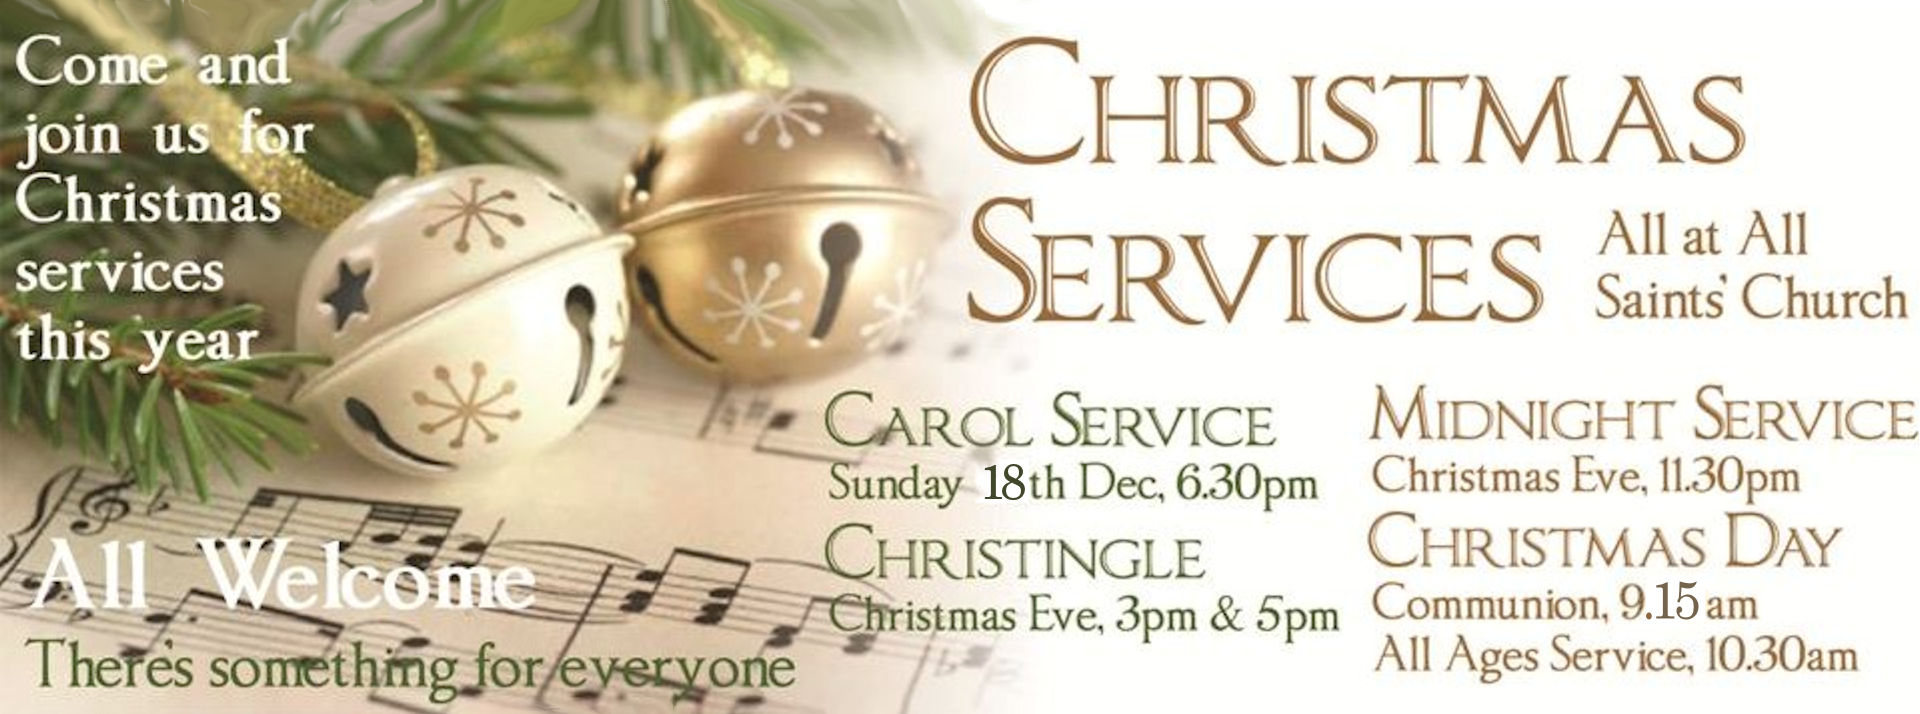 Christmas Services at All Saints', Binfield